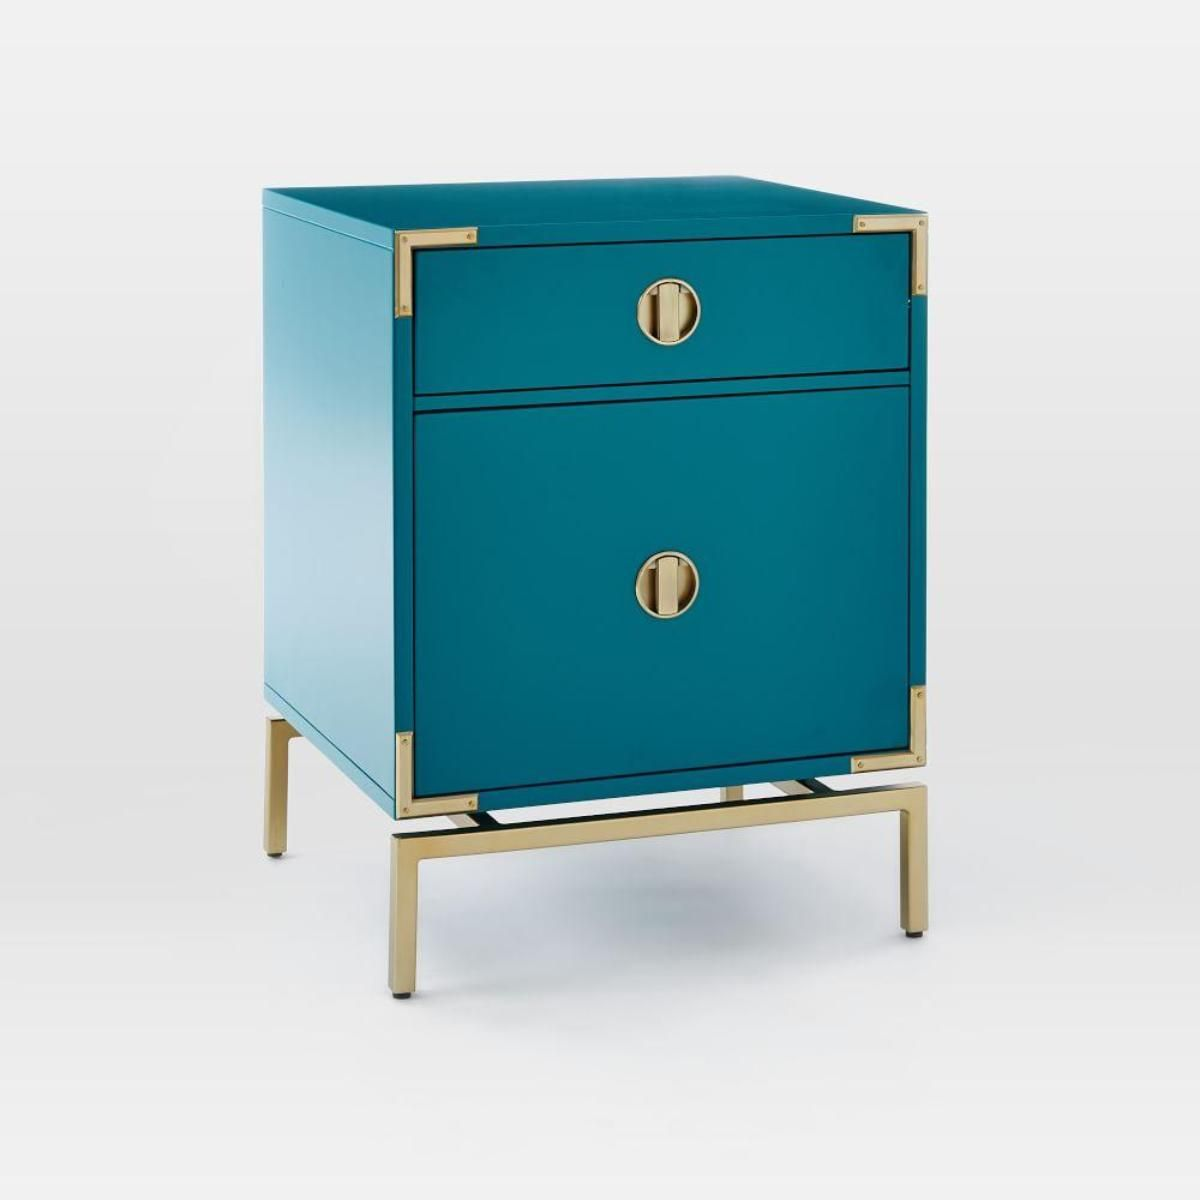 Modern Furniture Home Decor Home Accessories West Elm Teal Campaign Chest Nightstand